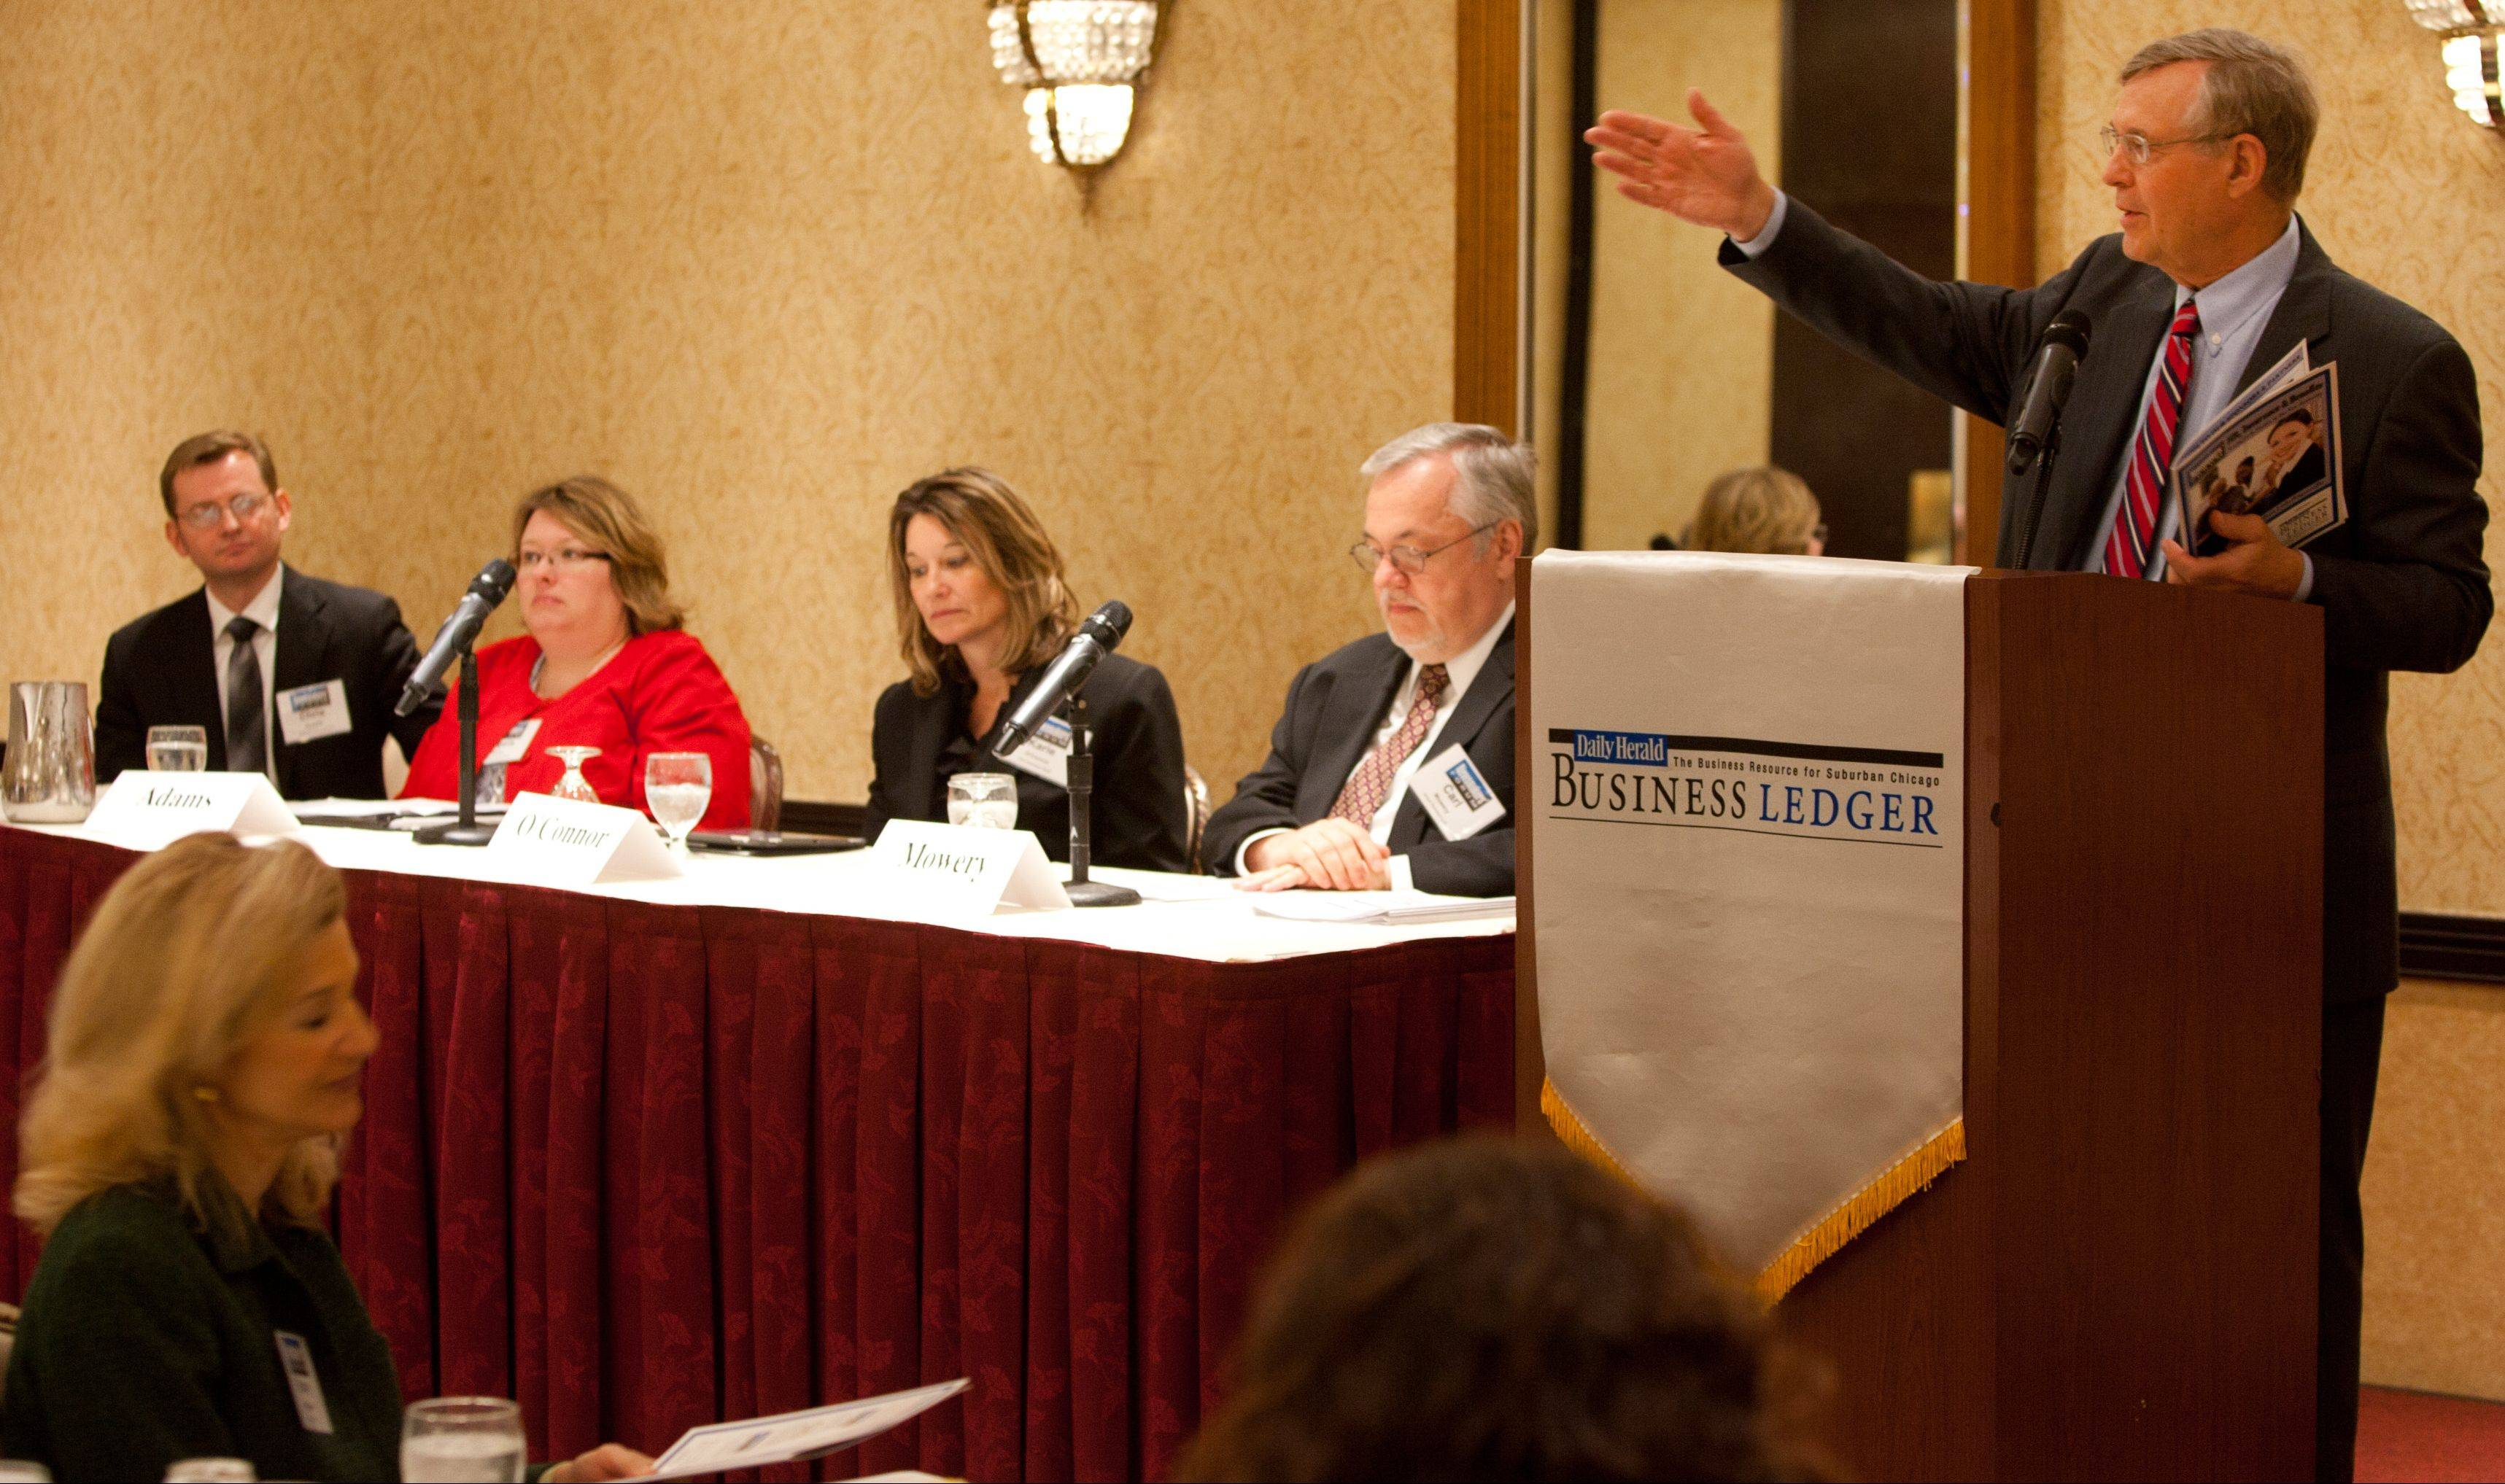 Jim Elsener, manager of business development for the Daily Herald Business Ledger, introduces the Newsmakers Forum panel at the Lisle/Naperville Hilton on Thursday.